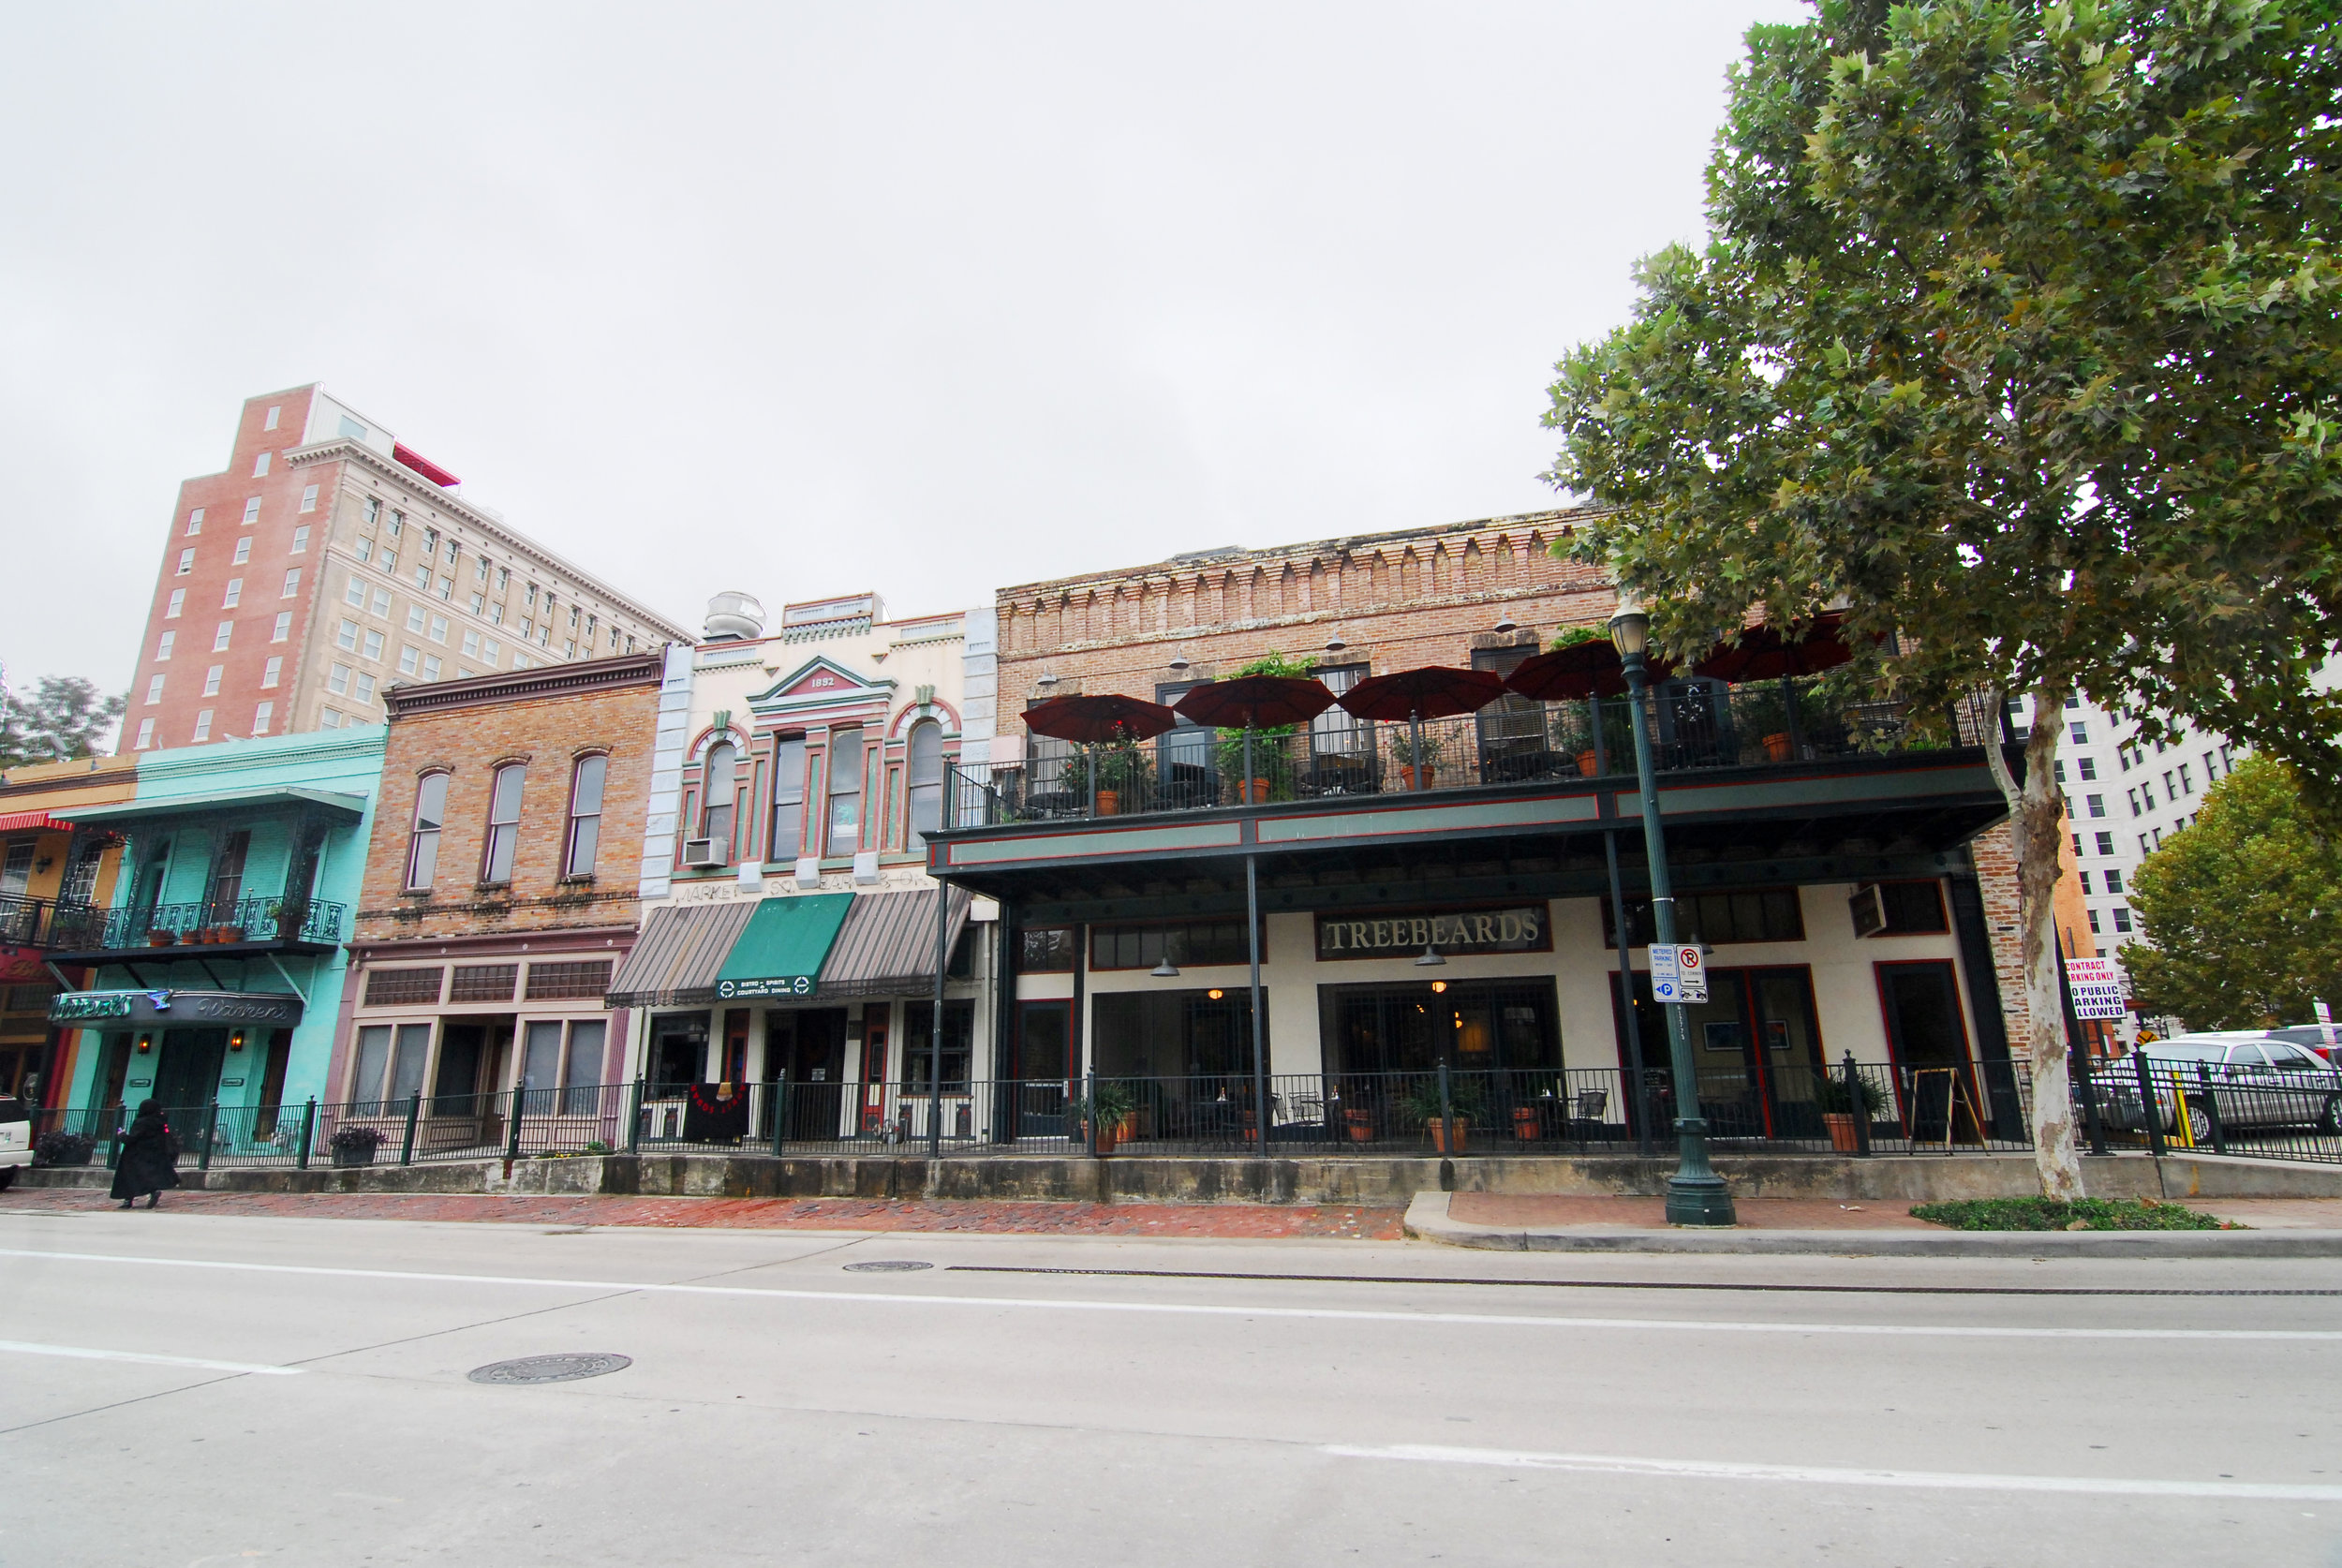 The Baker-Meyer Building still stands near the corner of Travis and Preston Streets on a row of historic commercial buildings facing Market Square Park.